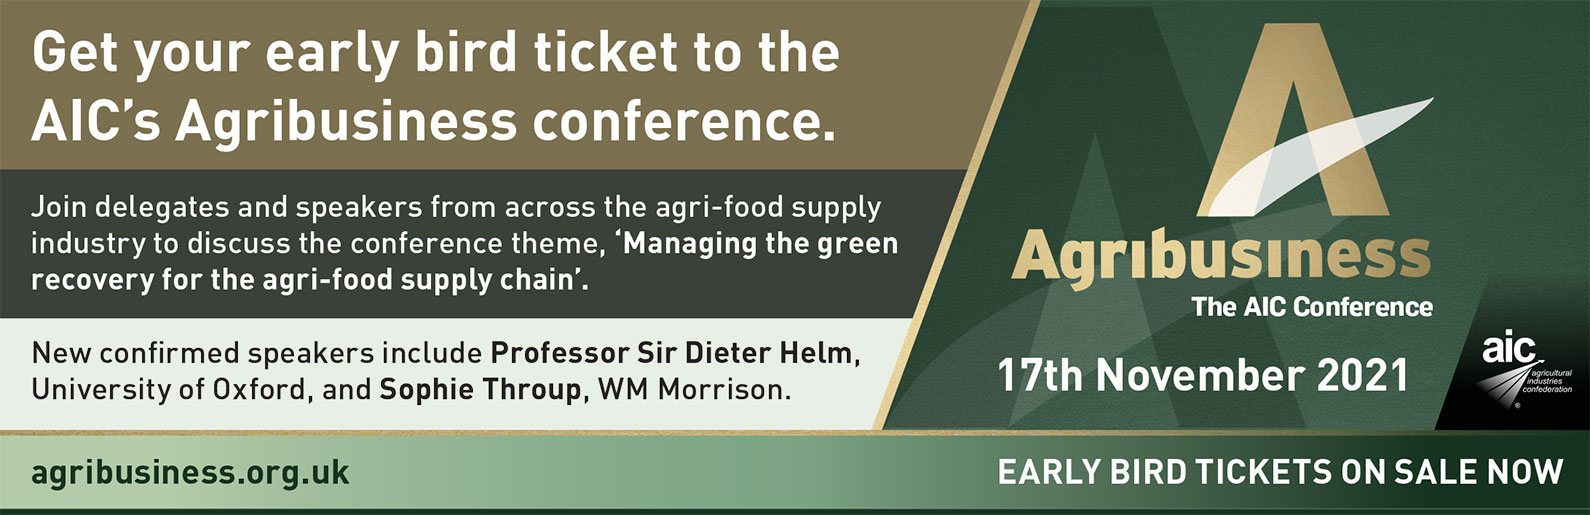 AIC AgriBusiness conference - 17th November 2021 - Early bird tickets on sale now